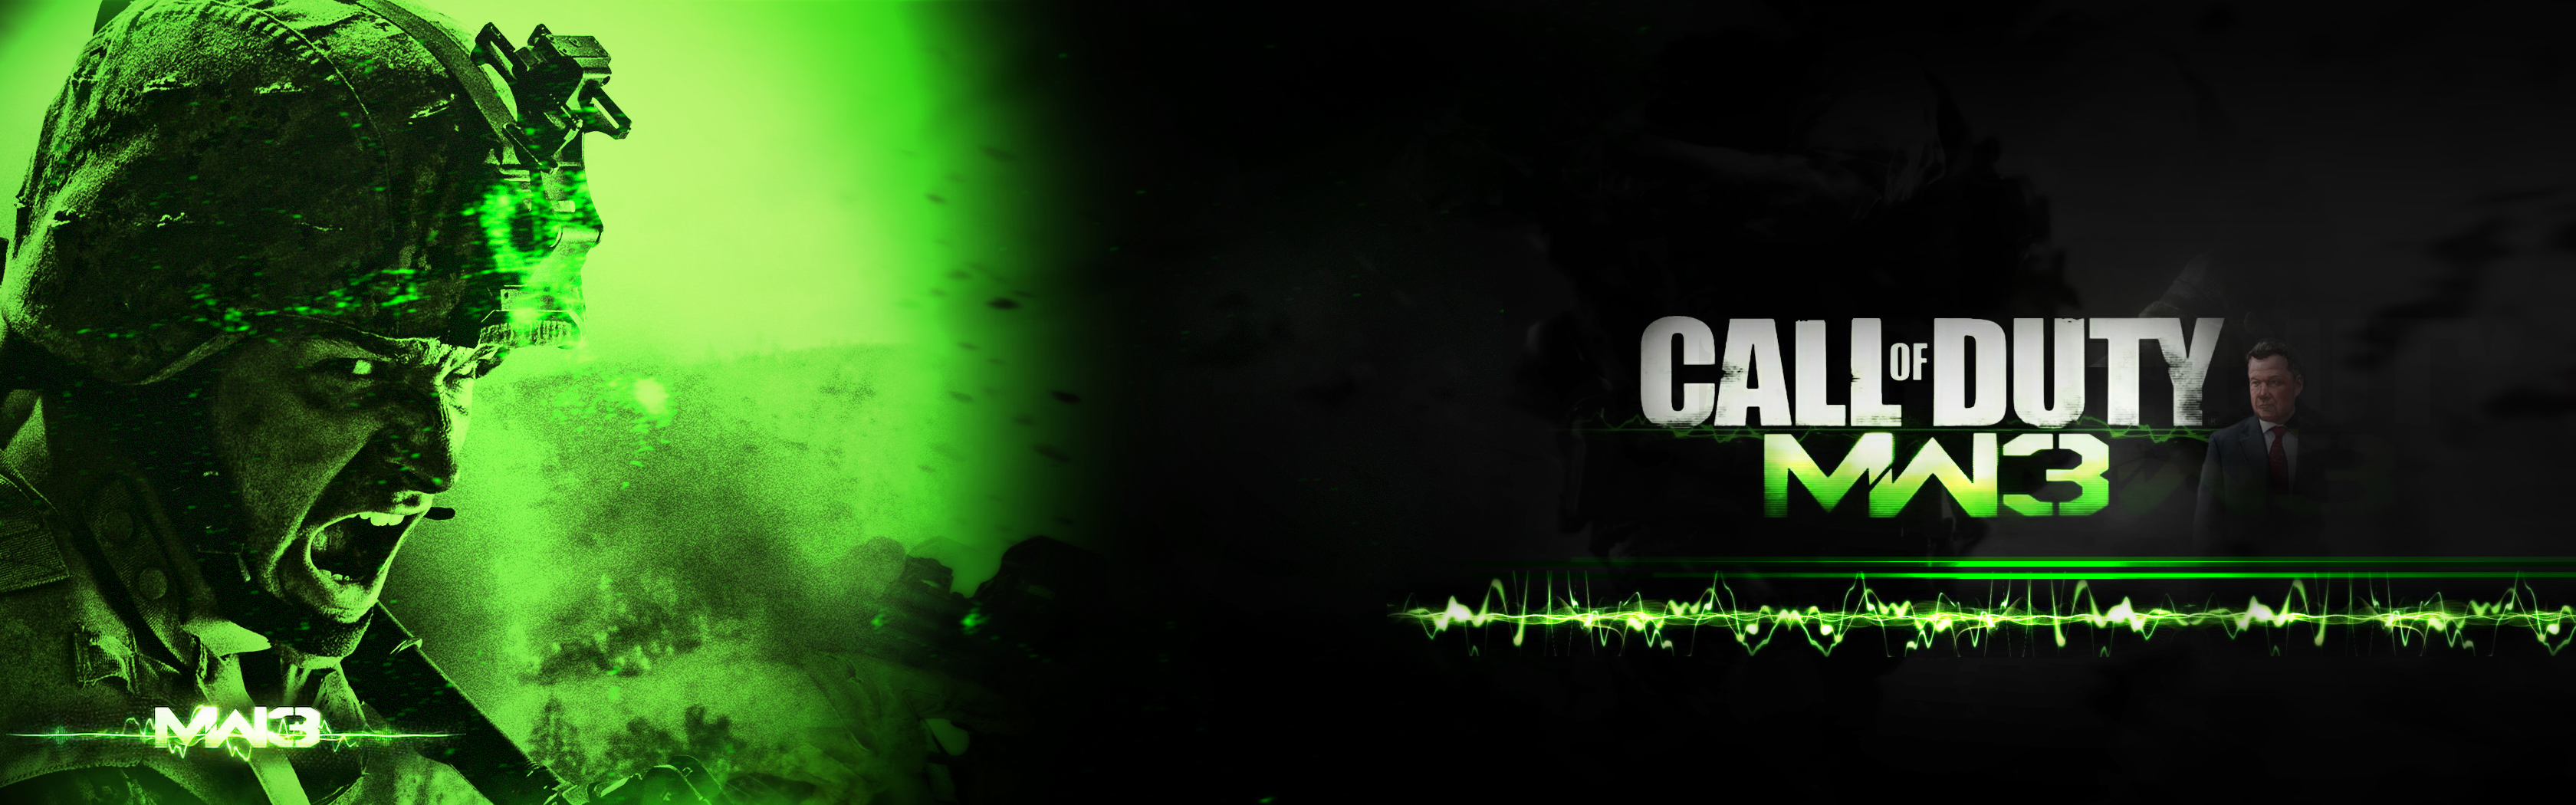 Call Of Duty Modern Warfare 3 Wallpaper And Background